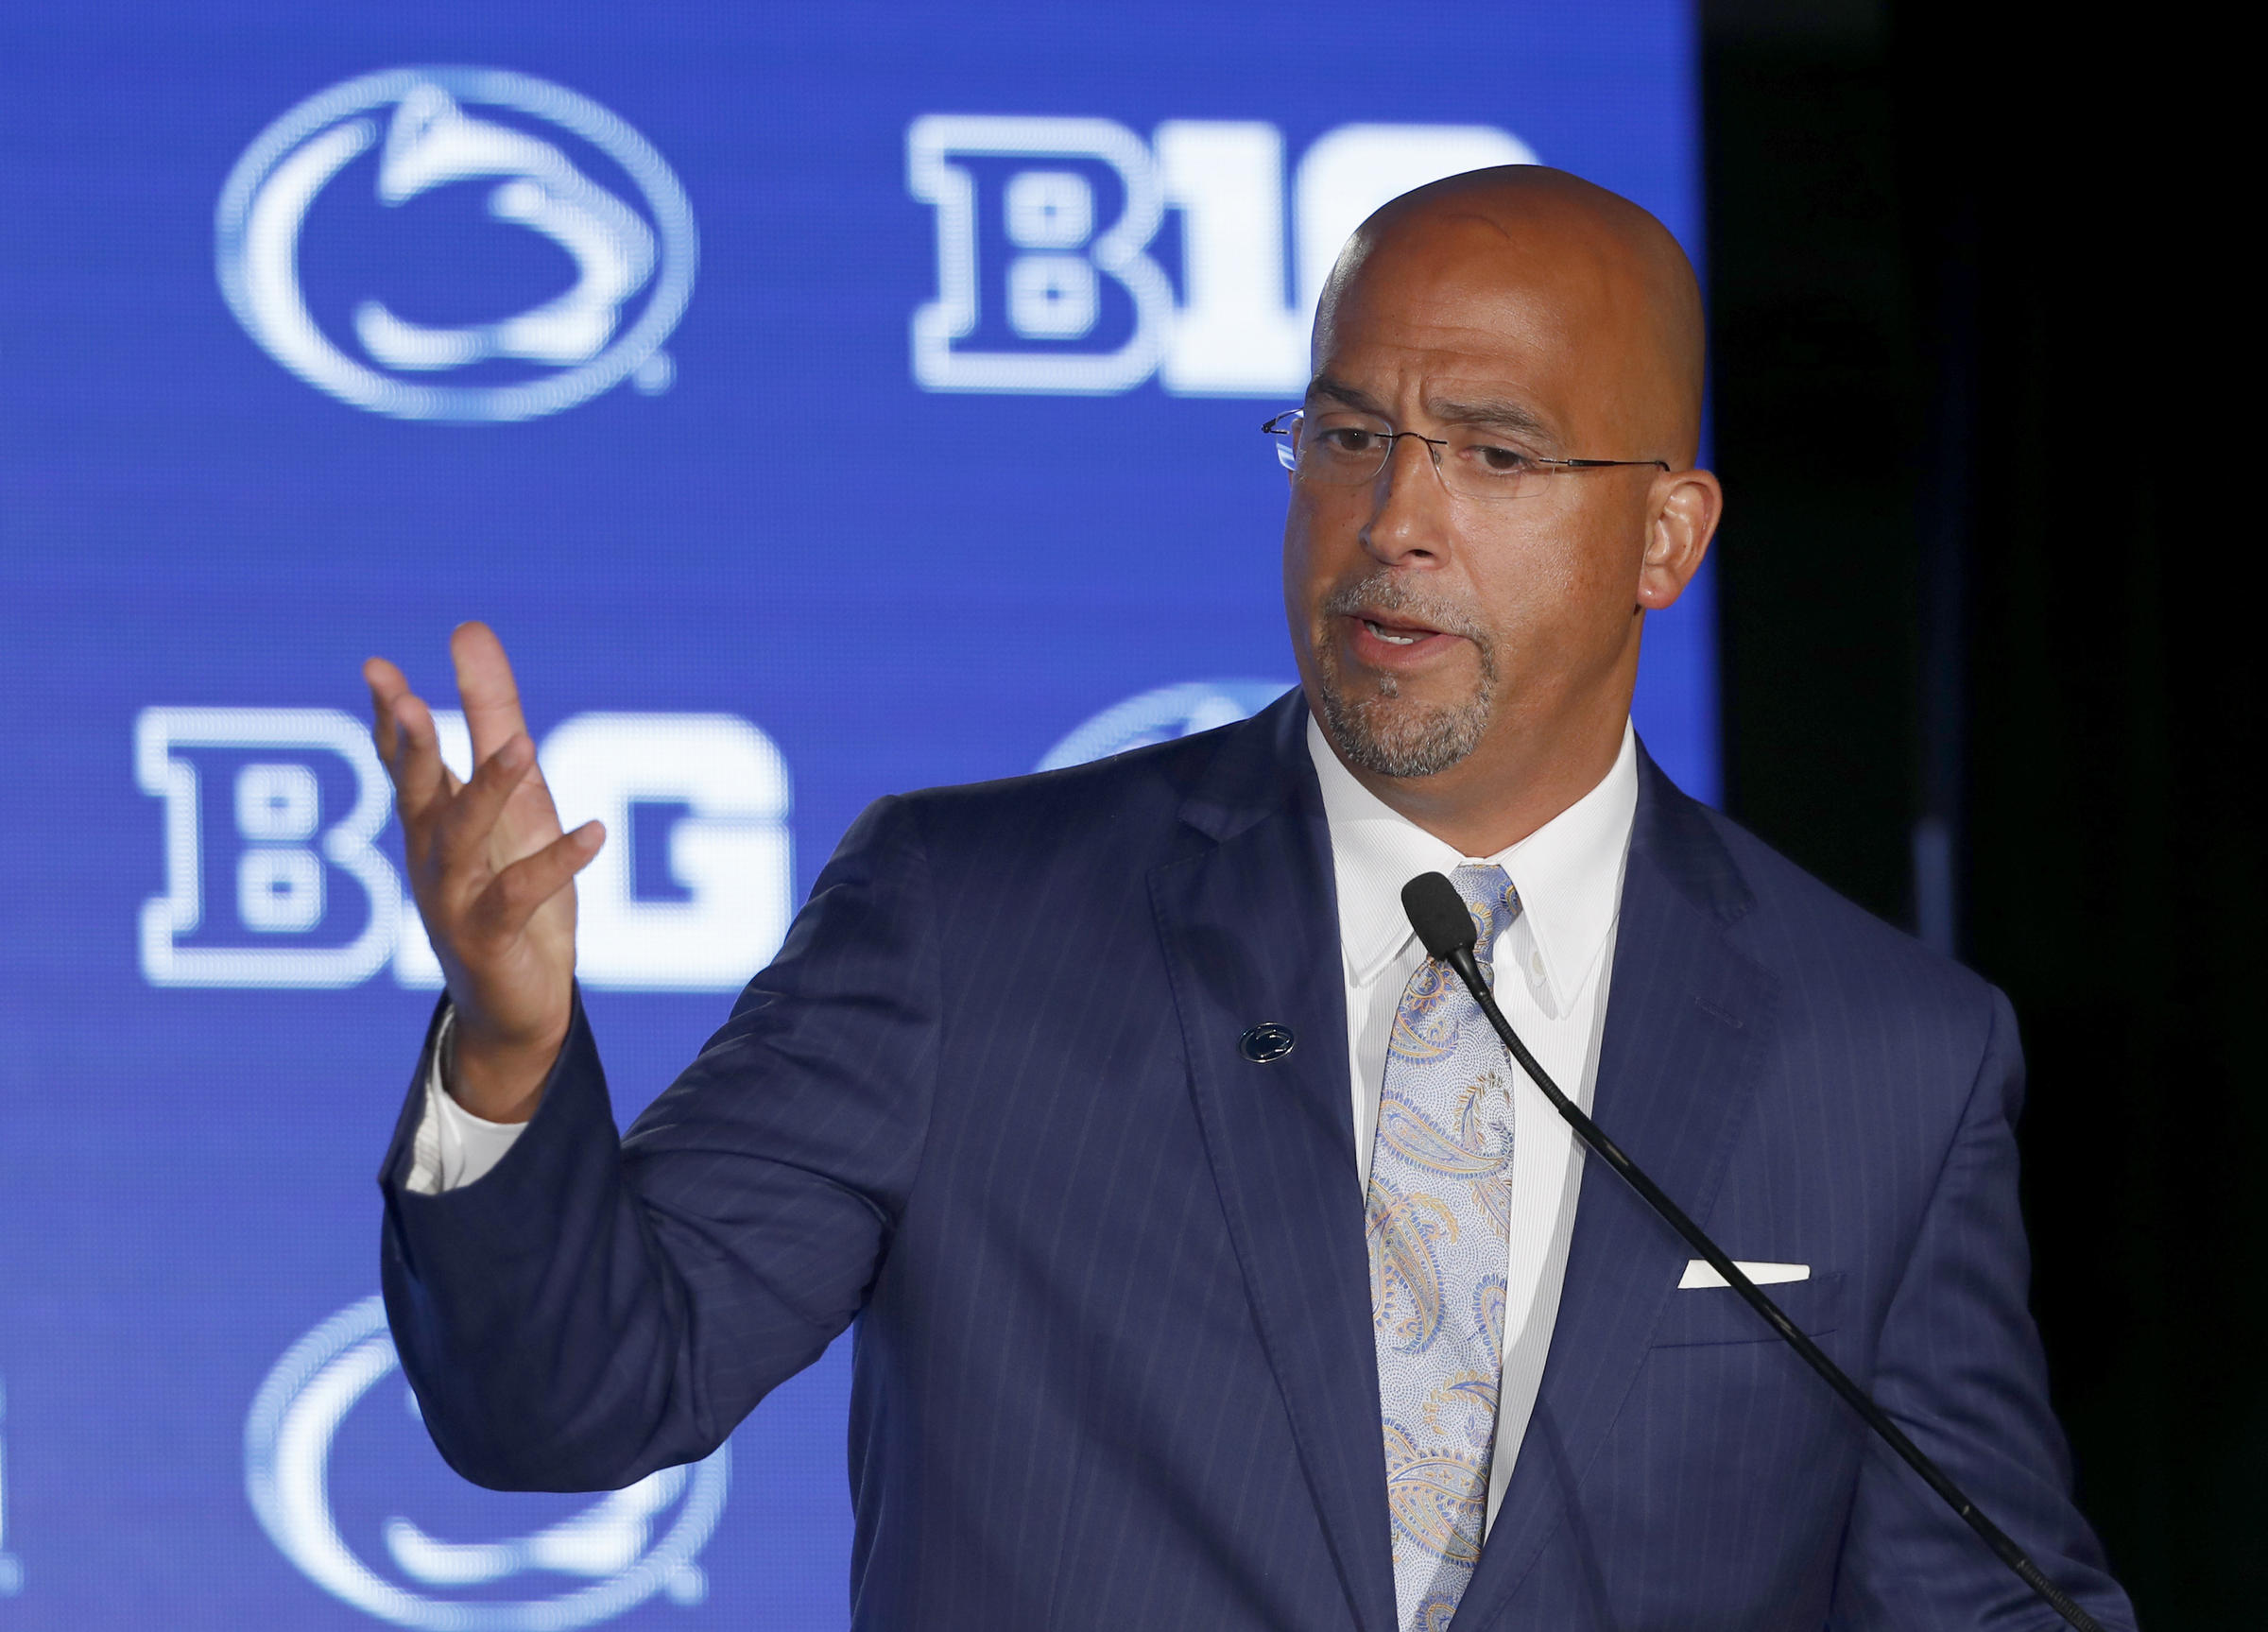 Lawsuit claims Penn State, Franklin pressured doctor to clear players